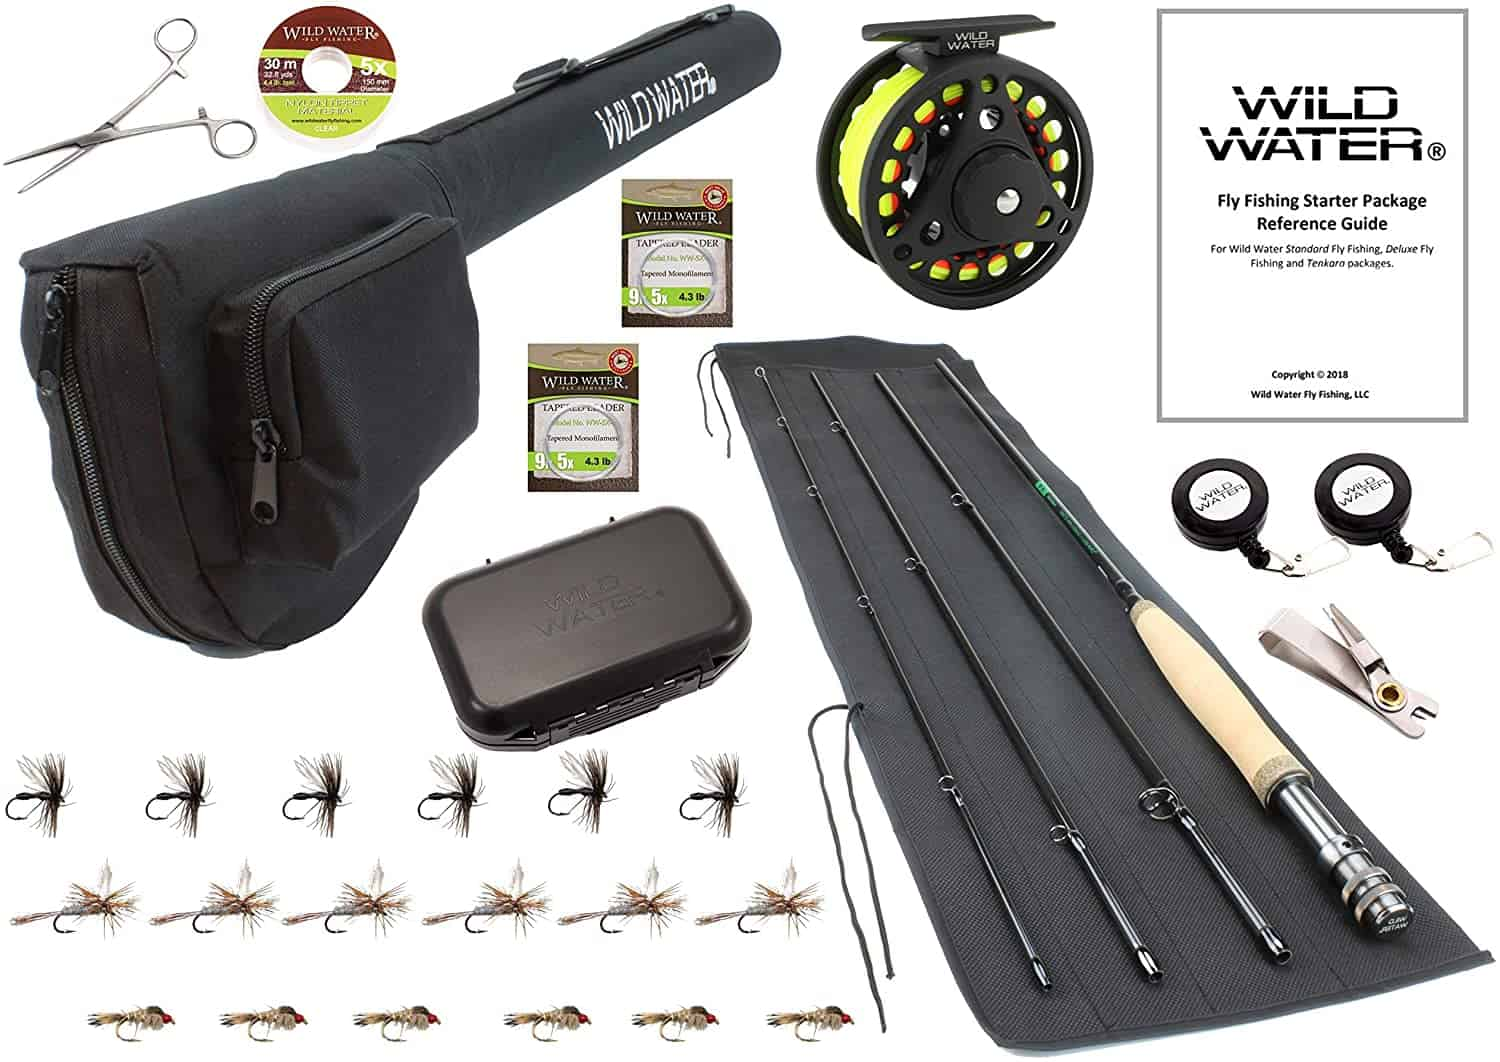 Deluxe Fly fishing Rod Starter Set by Wild Water